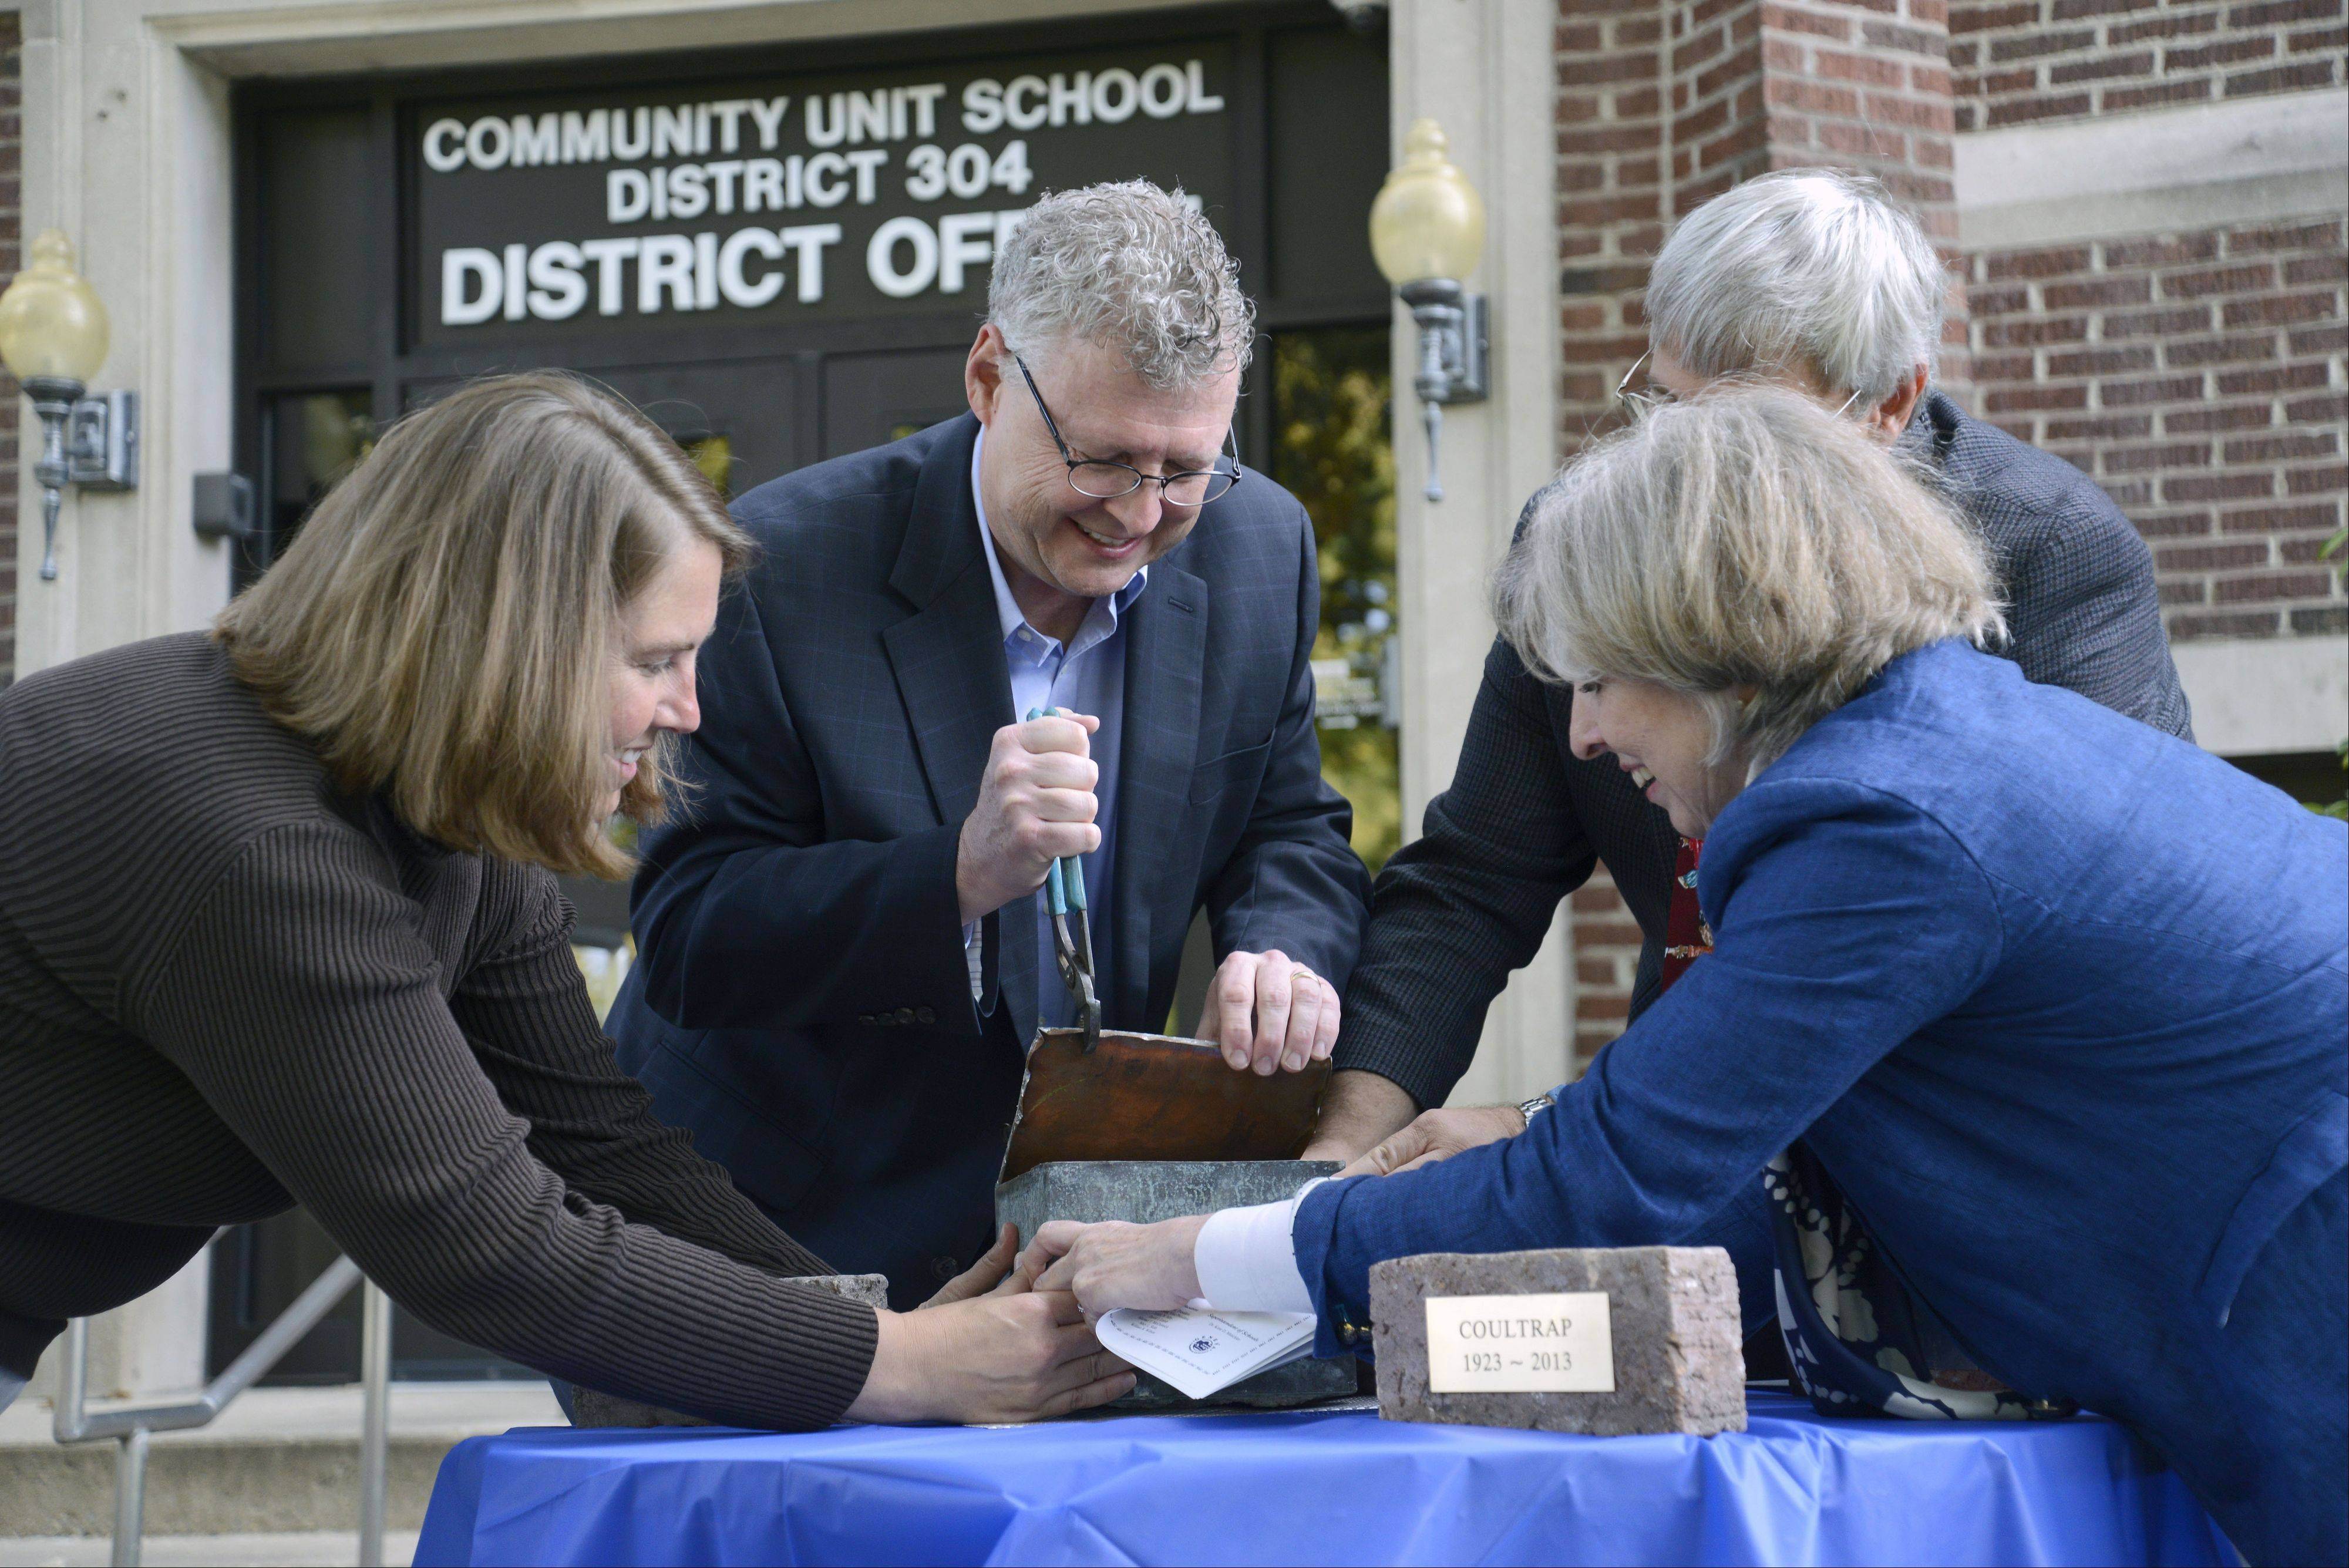 Paul Coultrap, center, of Downers Grove pries open a time capsule from 1922 with the help of Board of Education Vice President Kelly Nowak, left, Superintendent Kurt Mutchler, and Martha Coultrap of New York City. Inside the time capsule was a 1922 high school yearbook, a copy of a newspaper dated Aug. 11, 1922, a few silver coins and the school district's resolution.